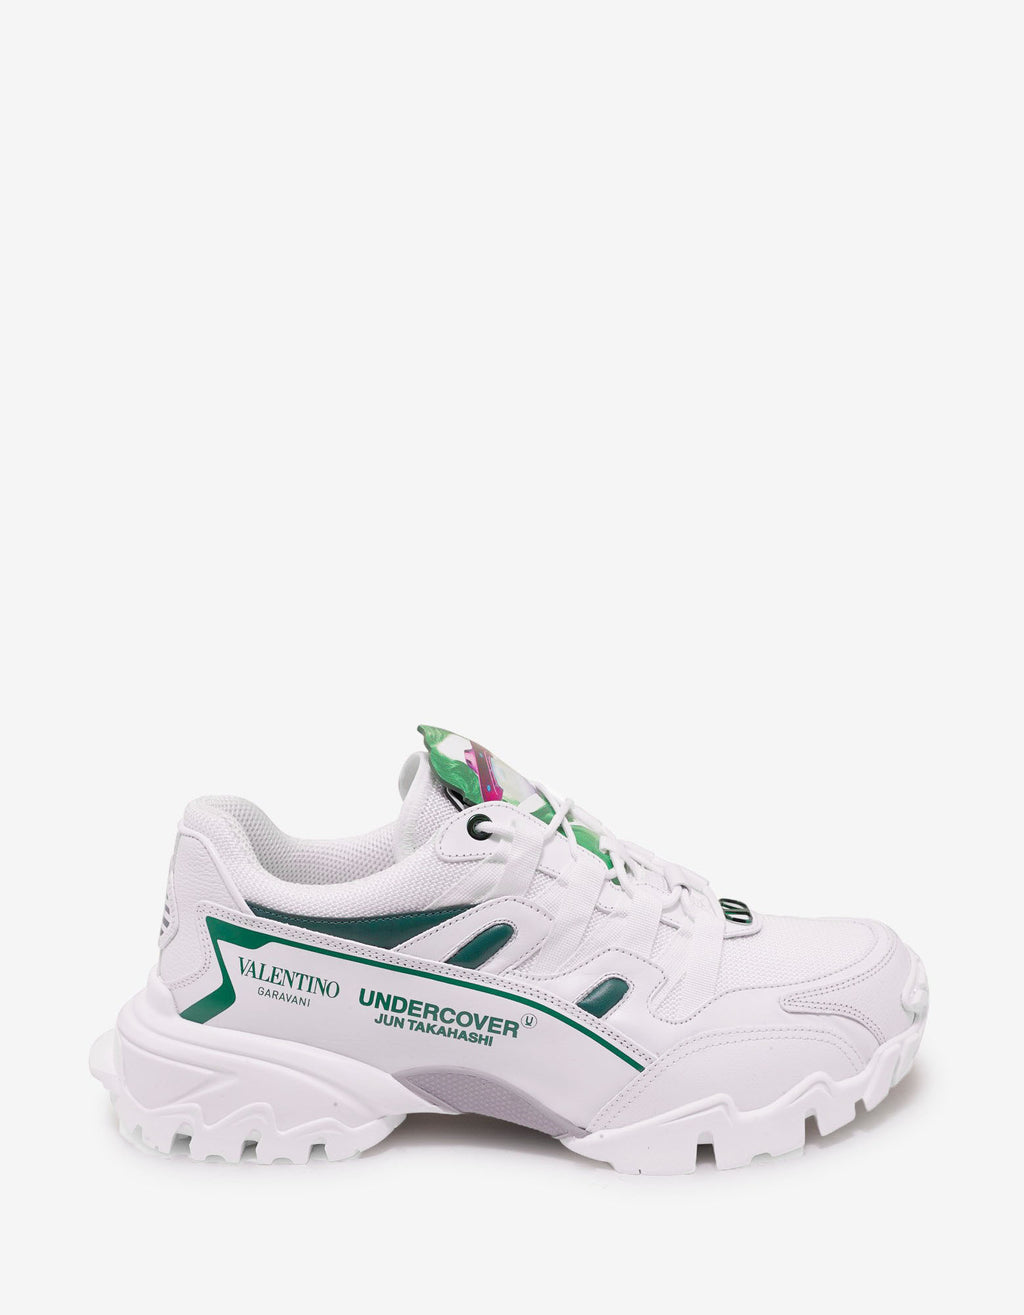 Undercover White Climbers Trainers